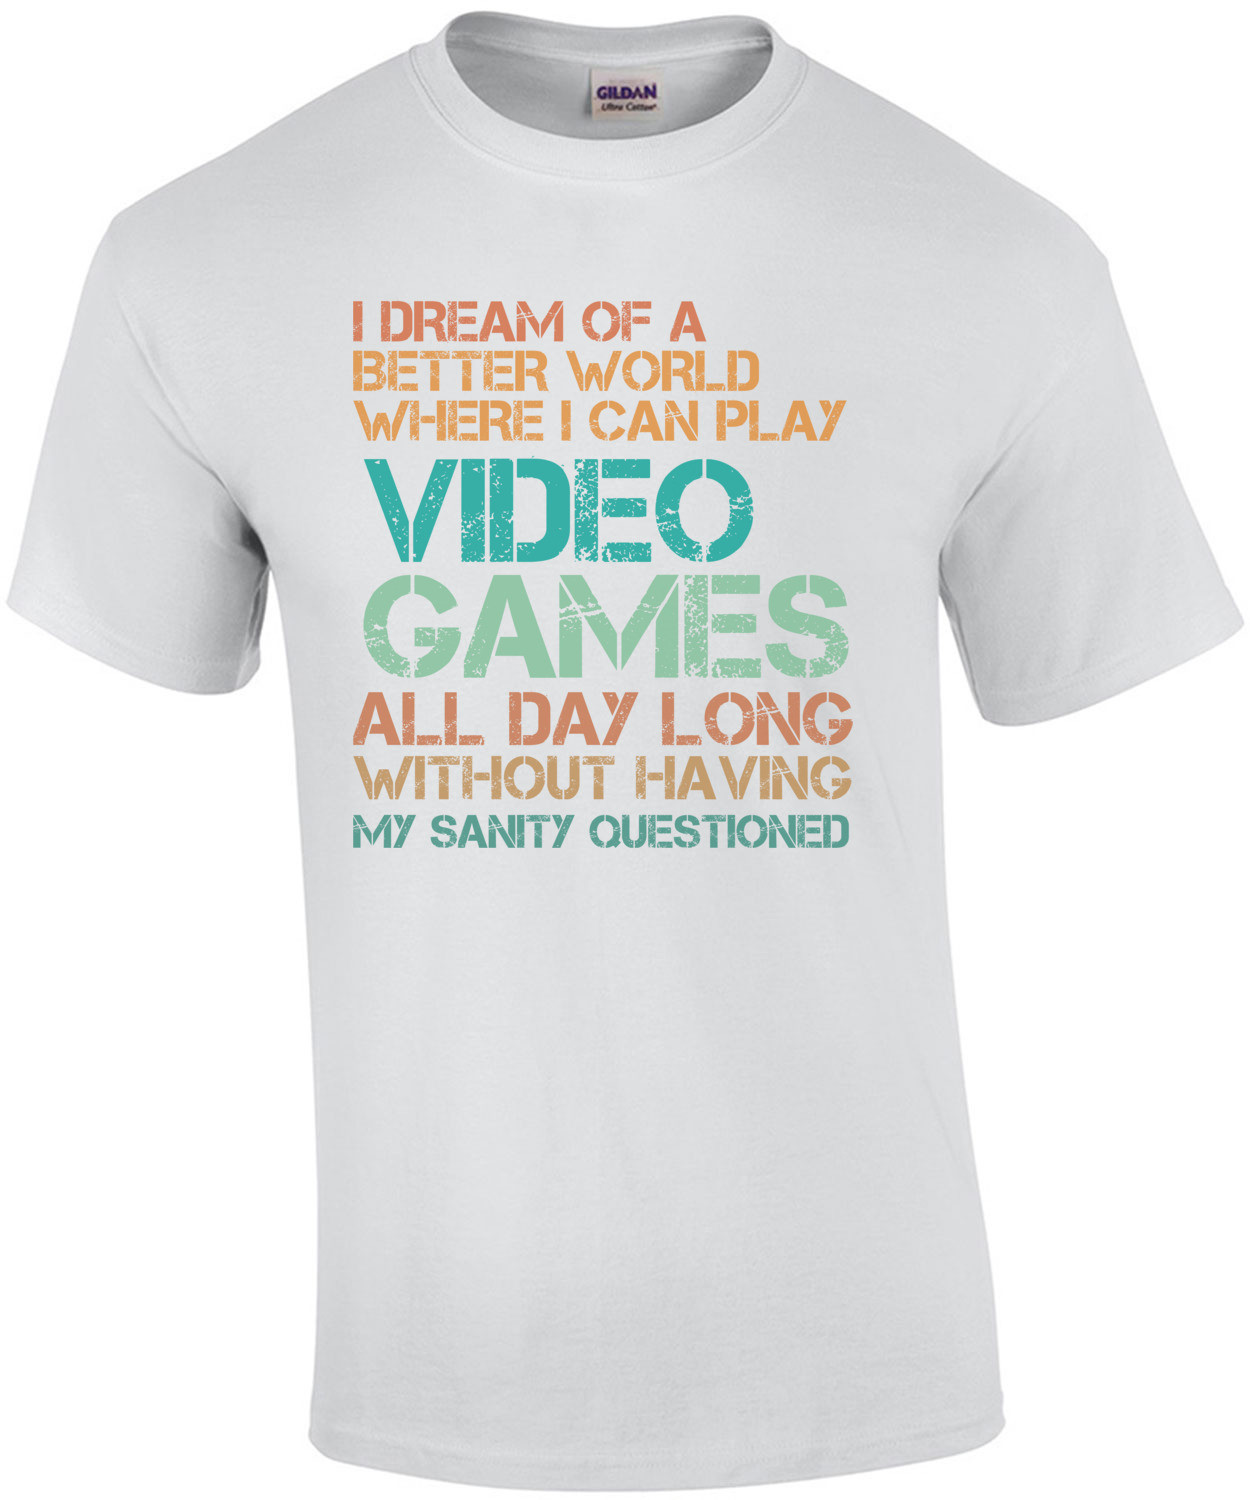 I dream of a better world where I can play video games all day - Gaming T-Shirt